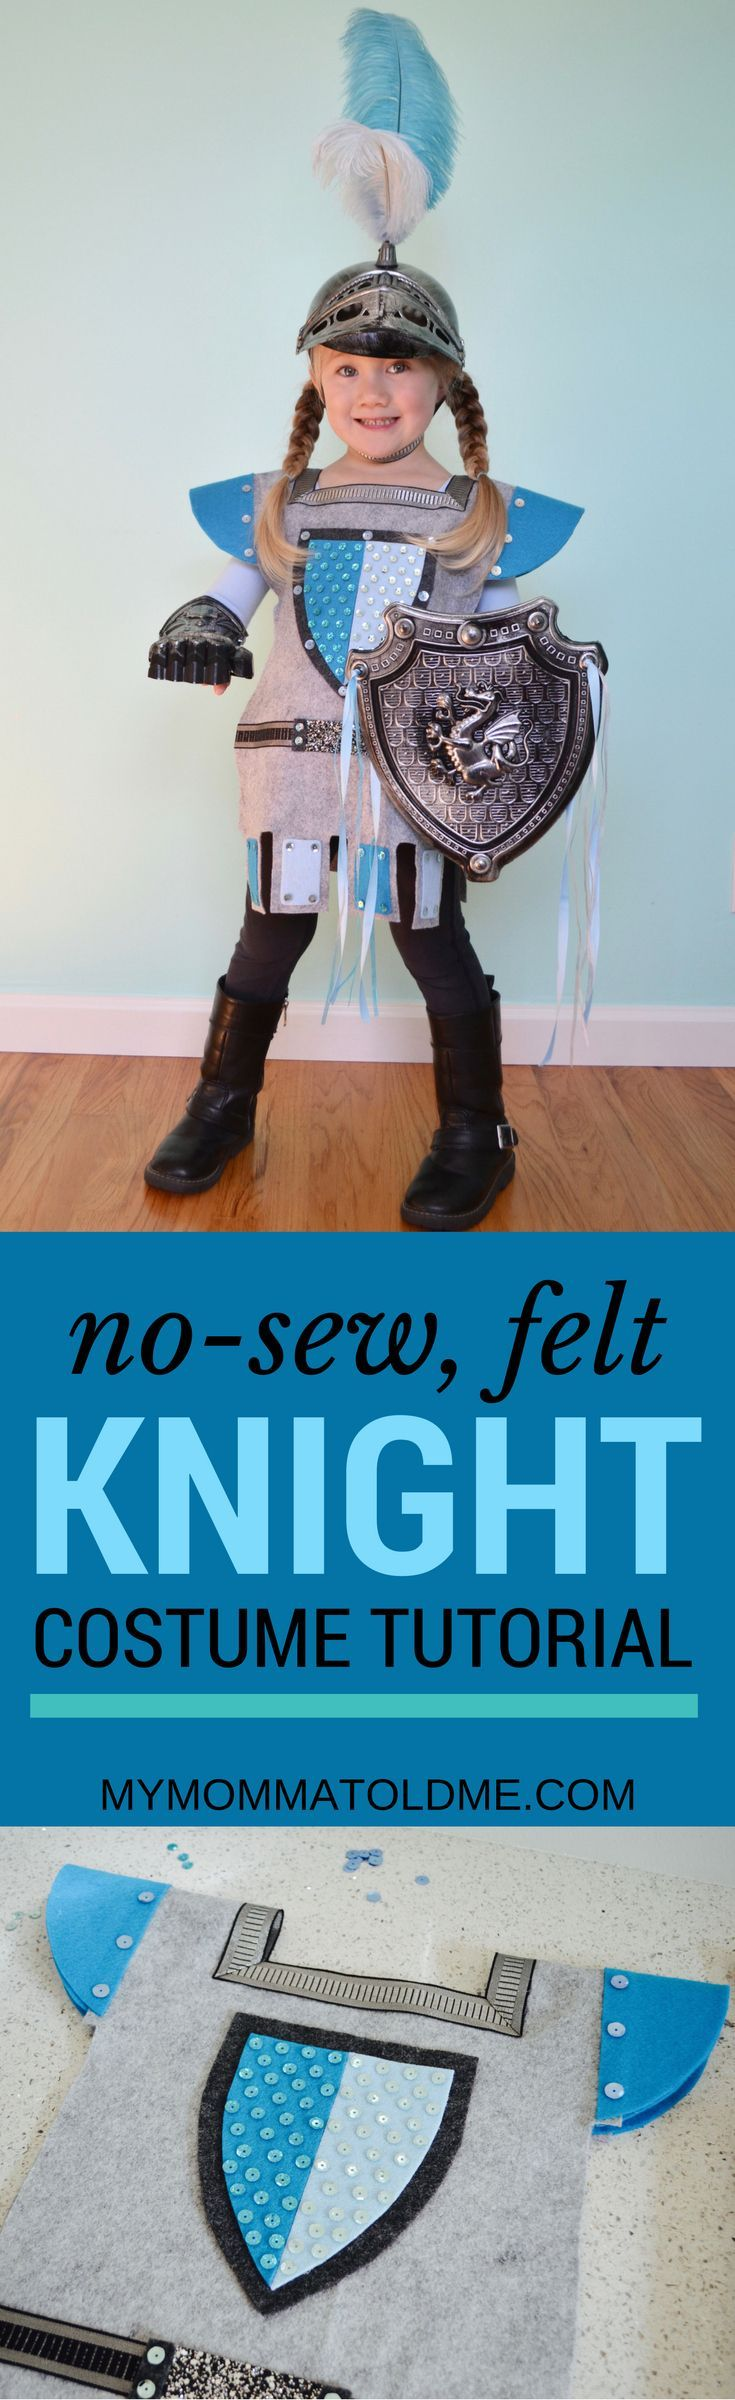 No sew felt knight costume diy!  Download the free pattern and use craft glue to assemble!  perfect for boys or girls Halloween or dress up costume!  Learn how to embellish Dollar store helmet and shield too!